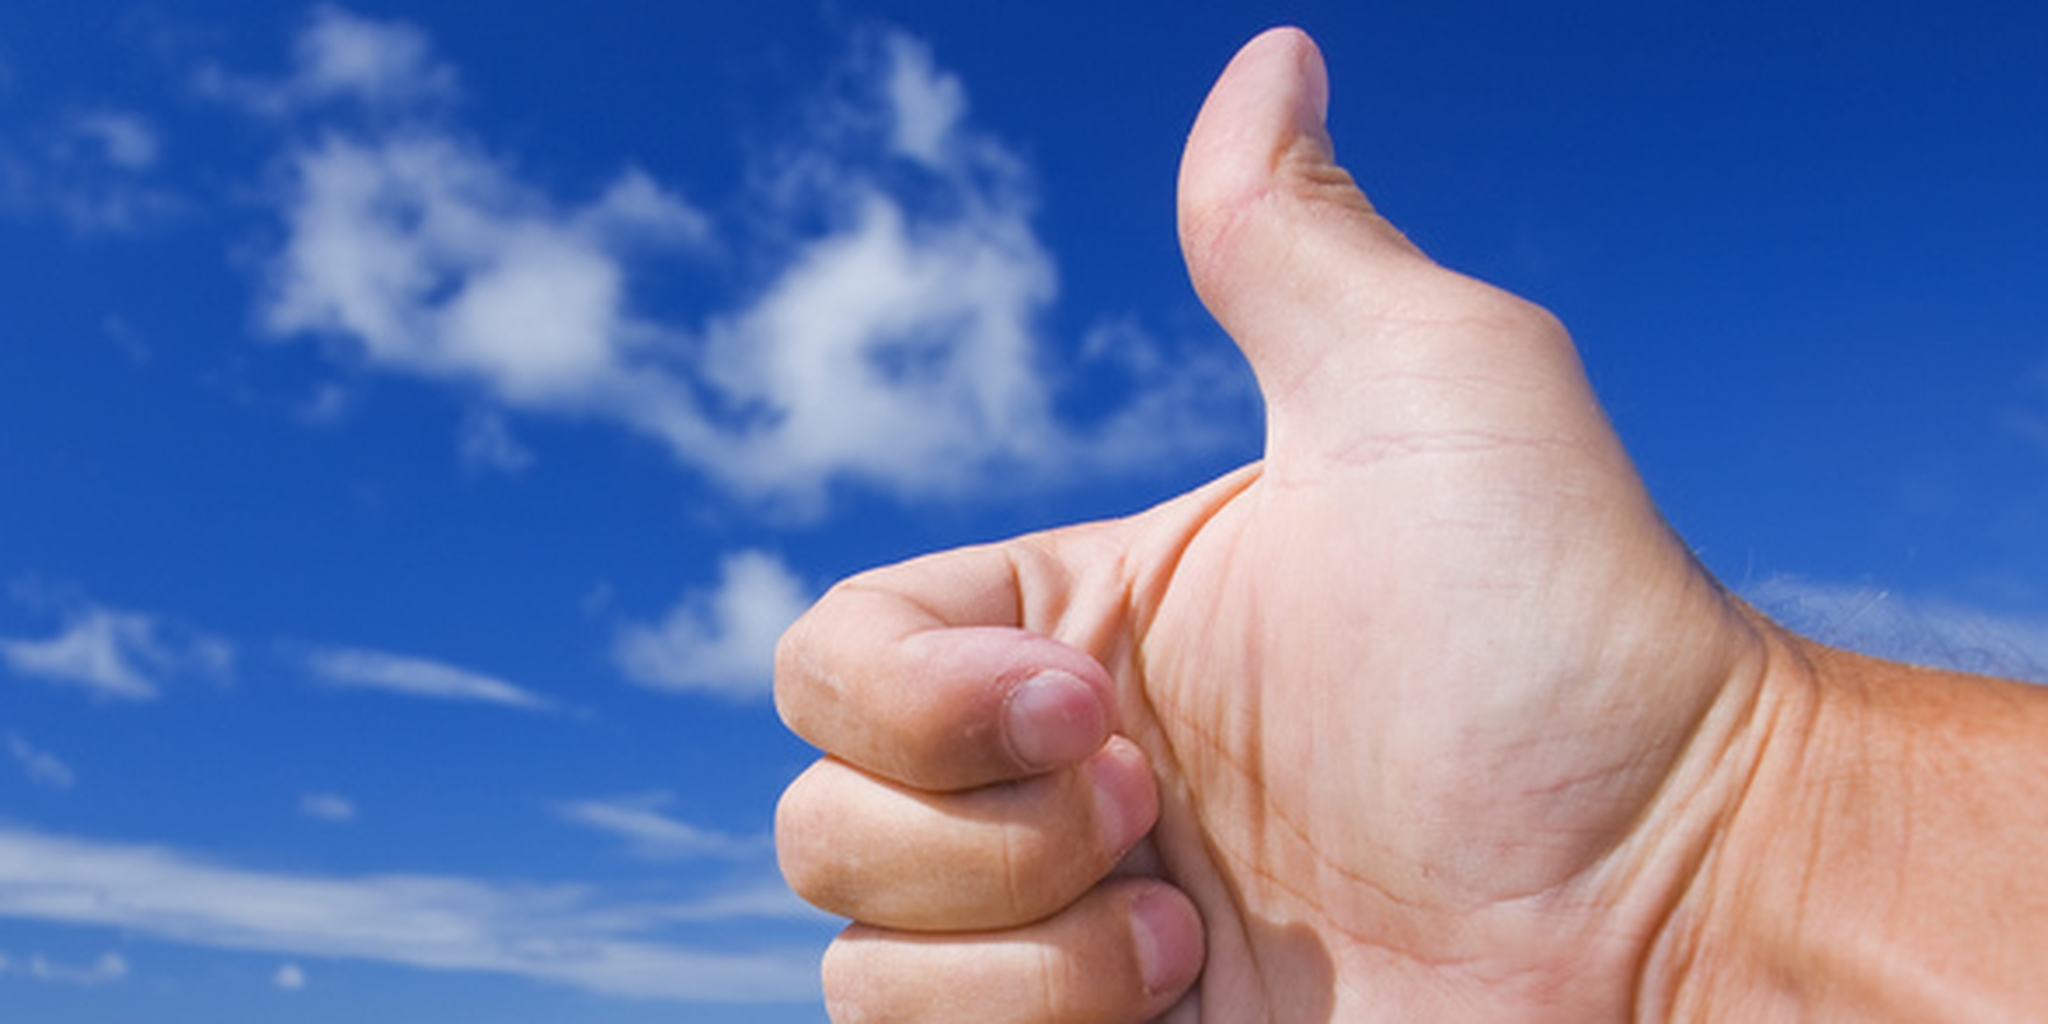 Thumbs UP | Flickr - Photo Sharing!